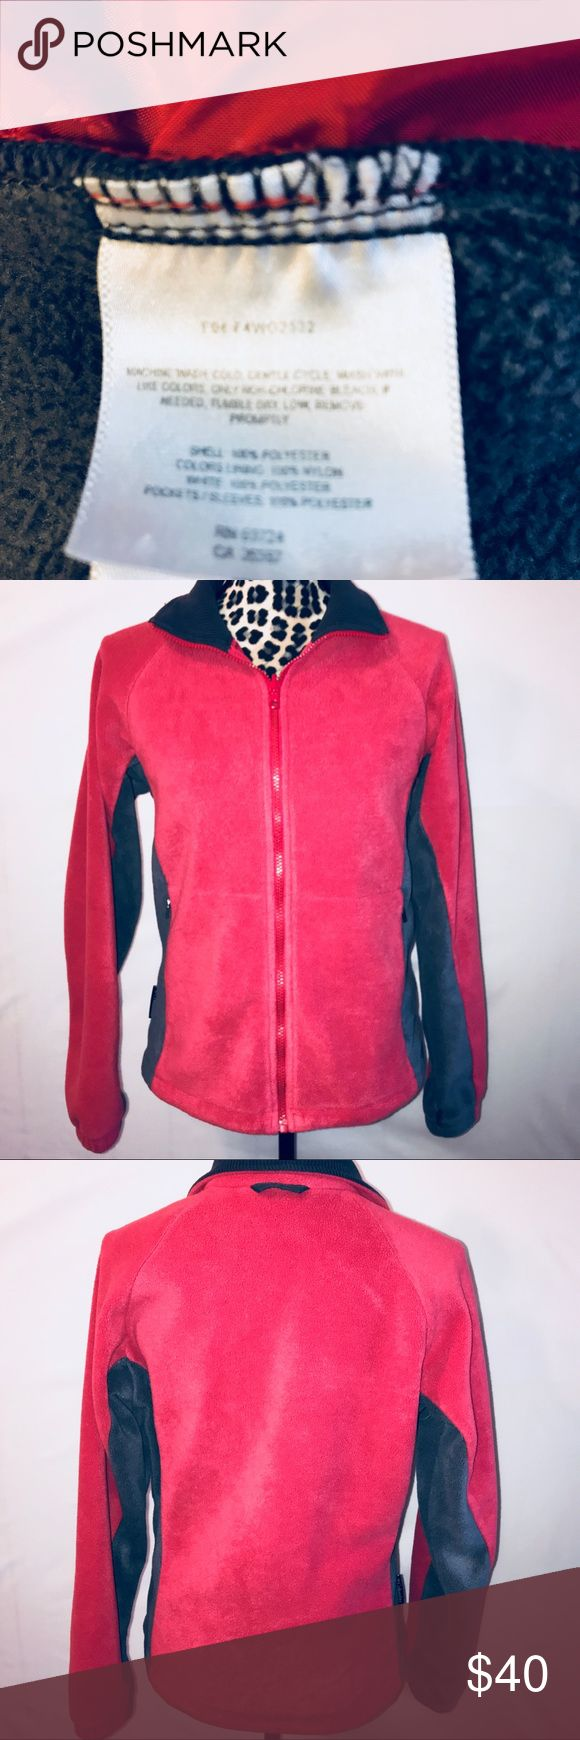 Women's Columbia vertex fleece zipup jacket medium Women's Columbia sportswear company zipup fleece jacket, size medium, colors red & gray, in excellent used condition, has 2 pockets Columbia Jackets & Coats